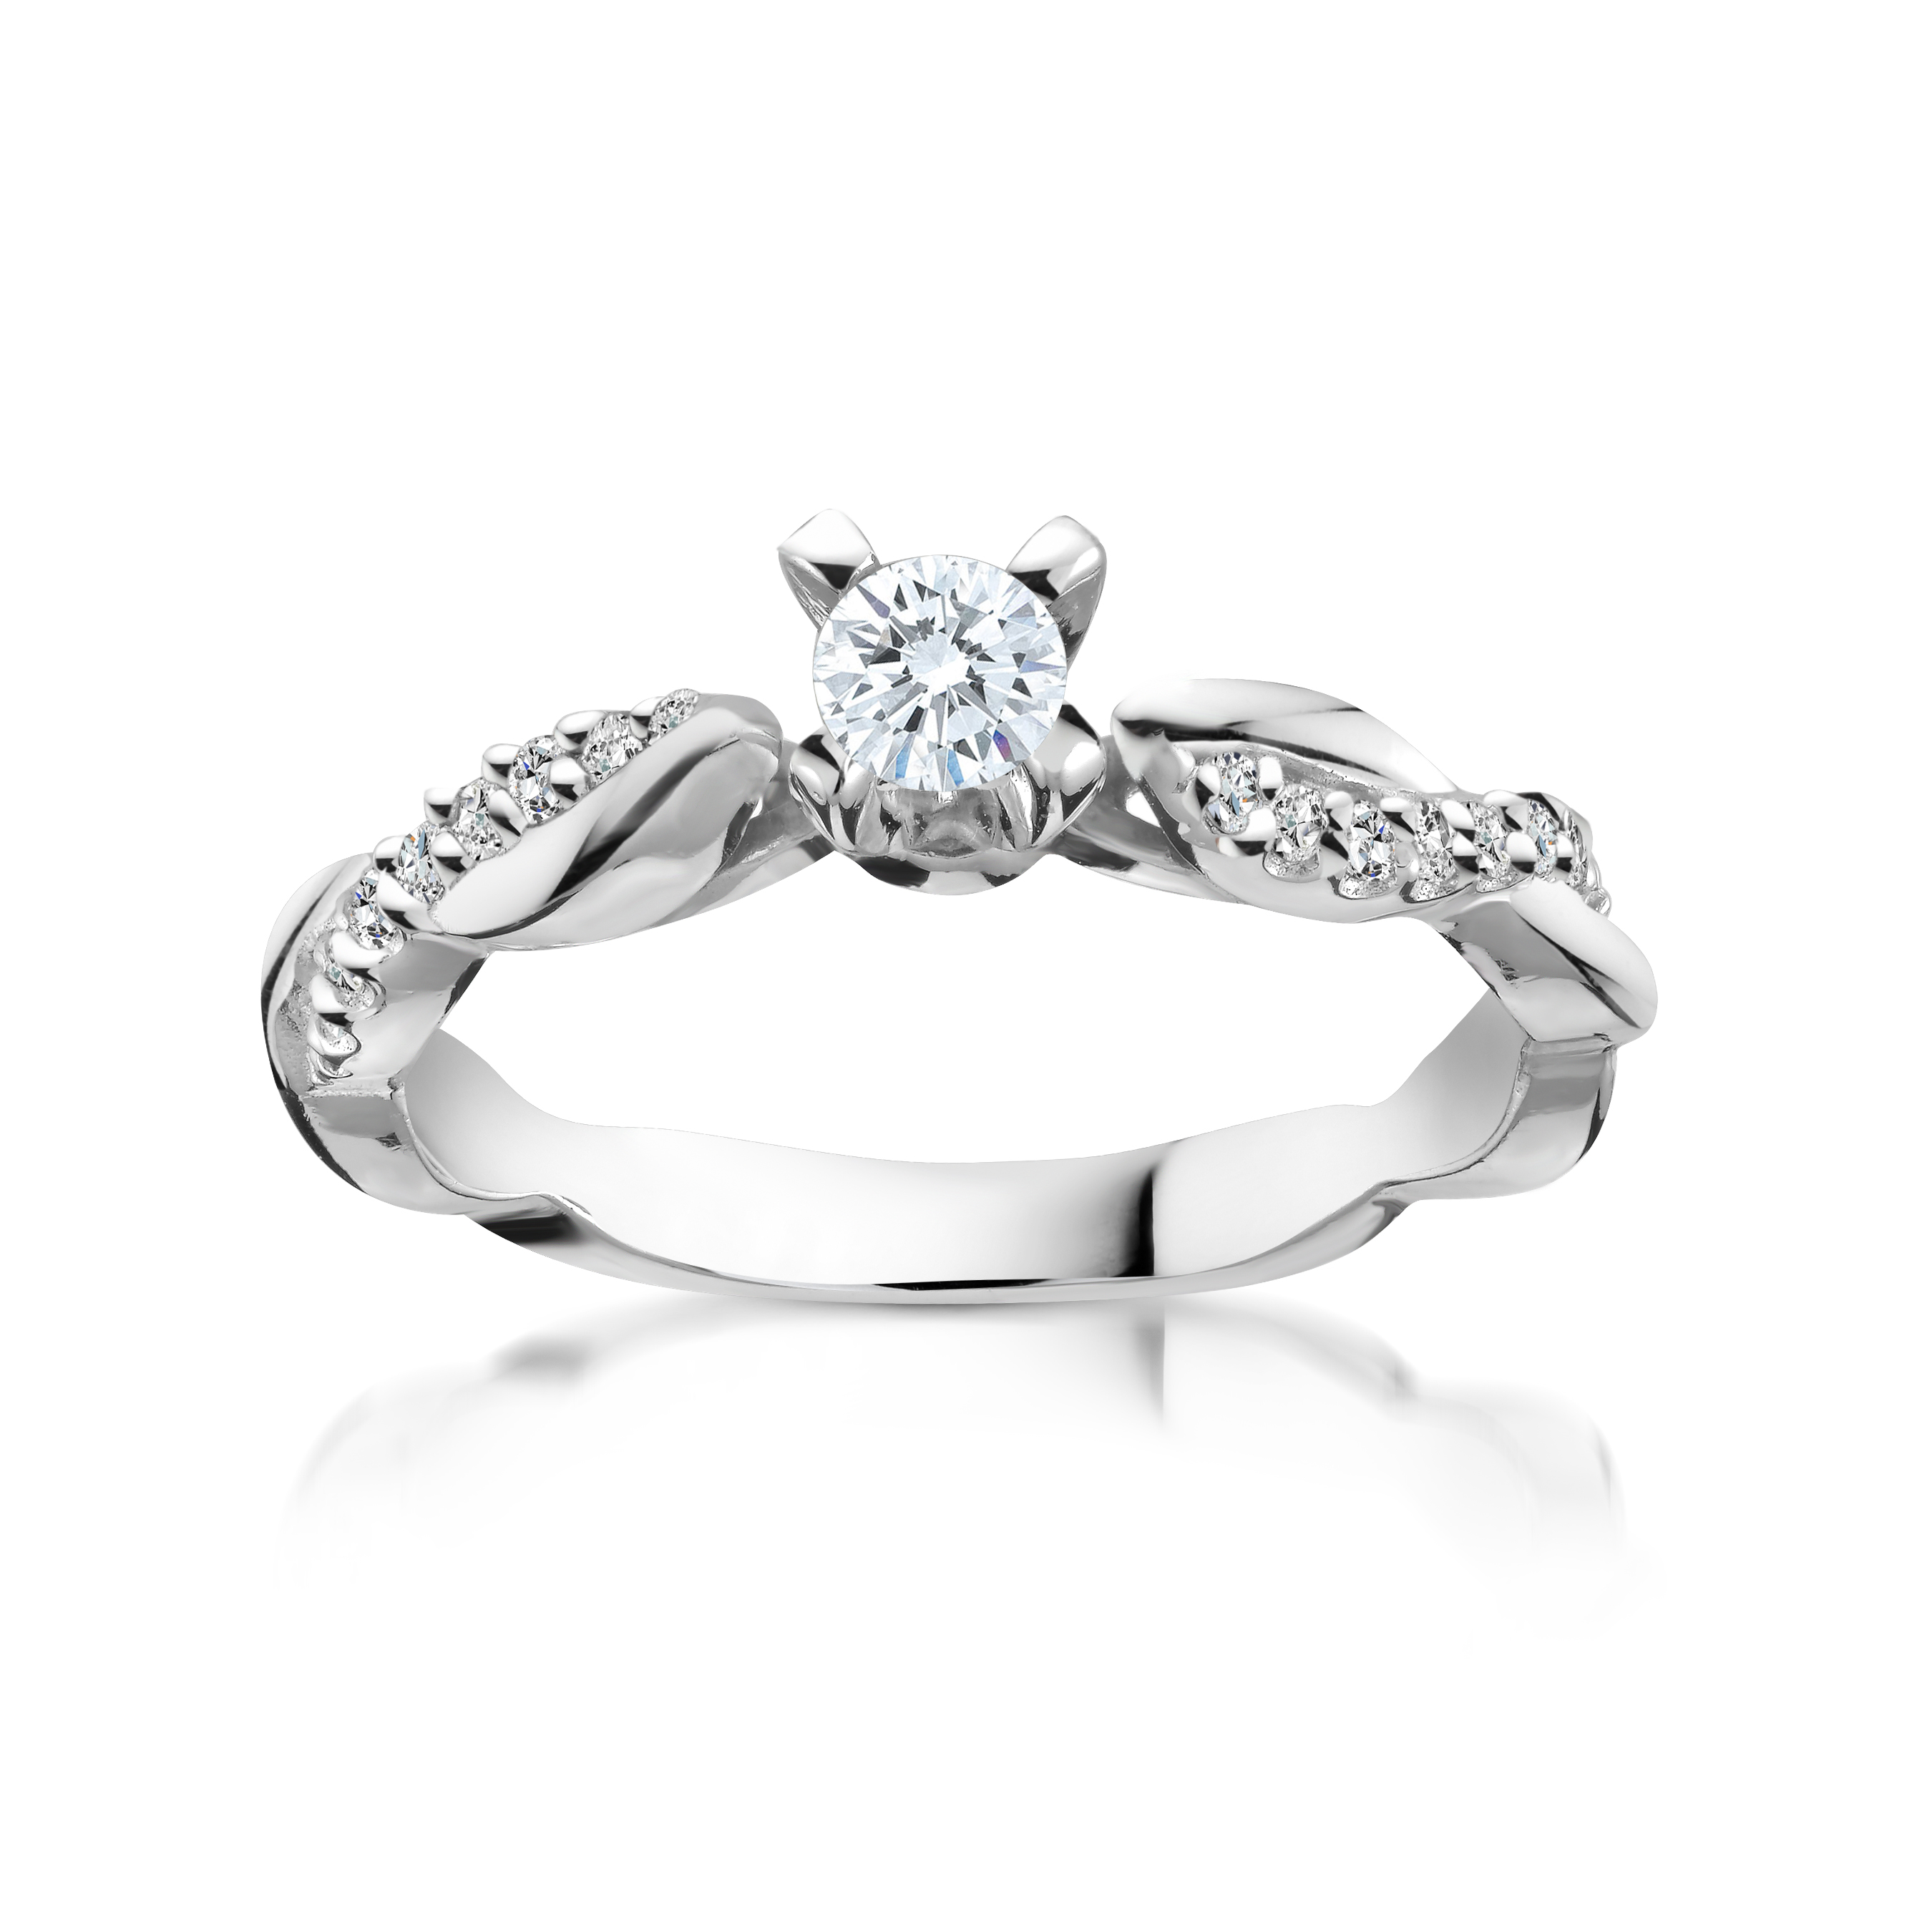 Engagement ring for woman - 10K white gold & Diamonds T.W. 0.28 Carat